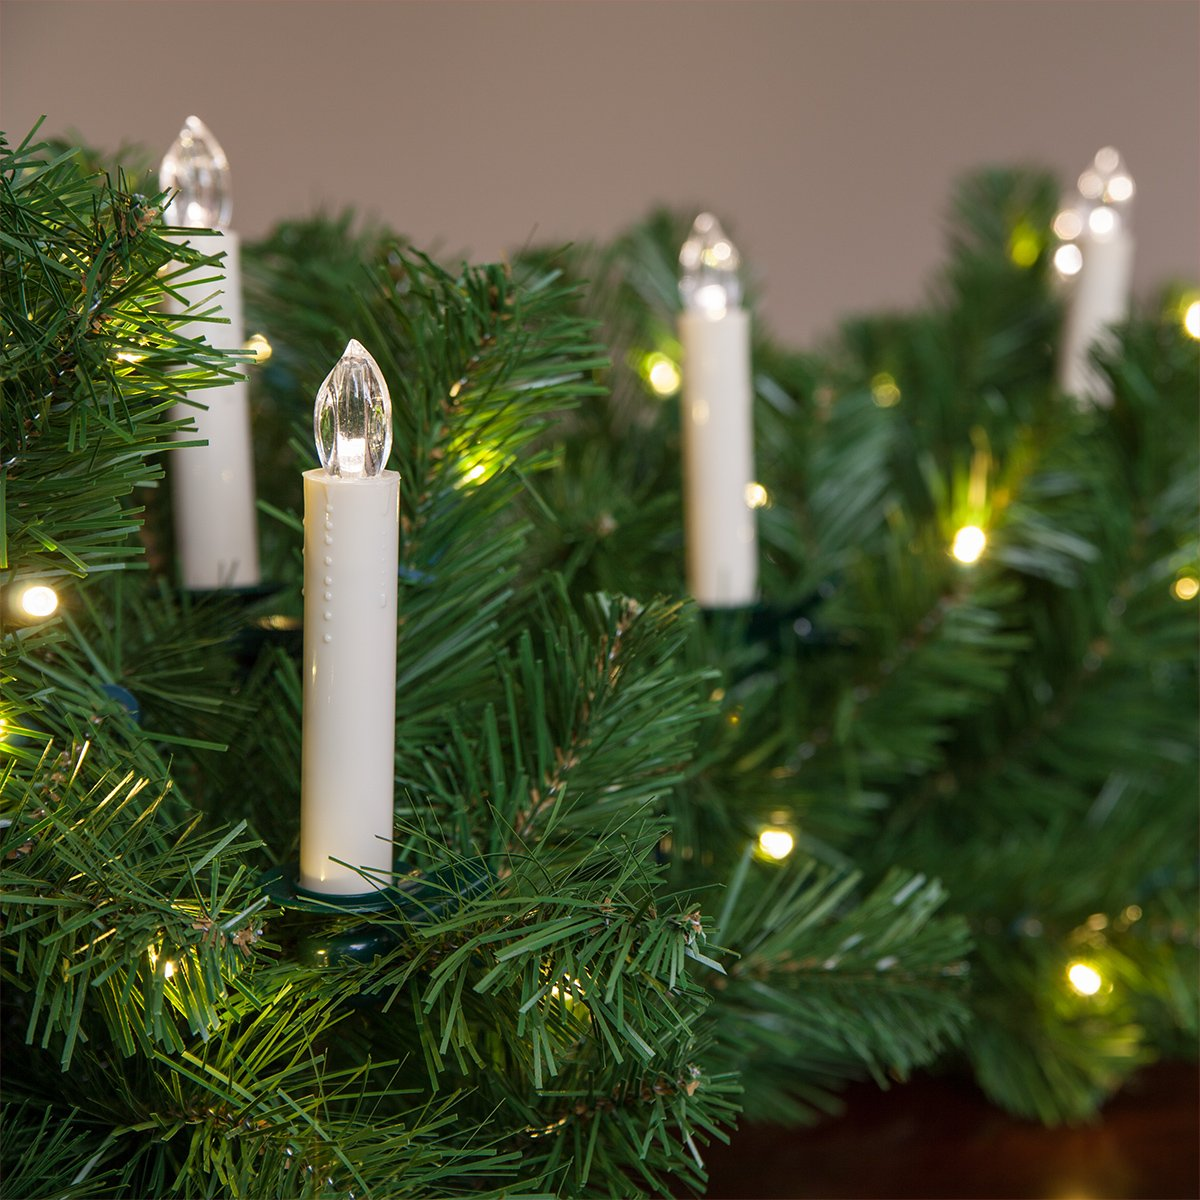 Amazon.com : Flameless Electric LED Candles - Clip-On Christmas Tree ...